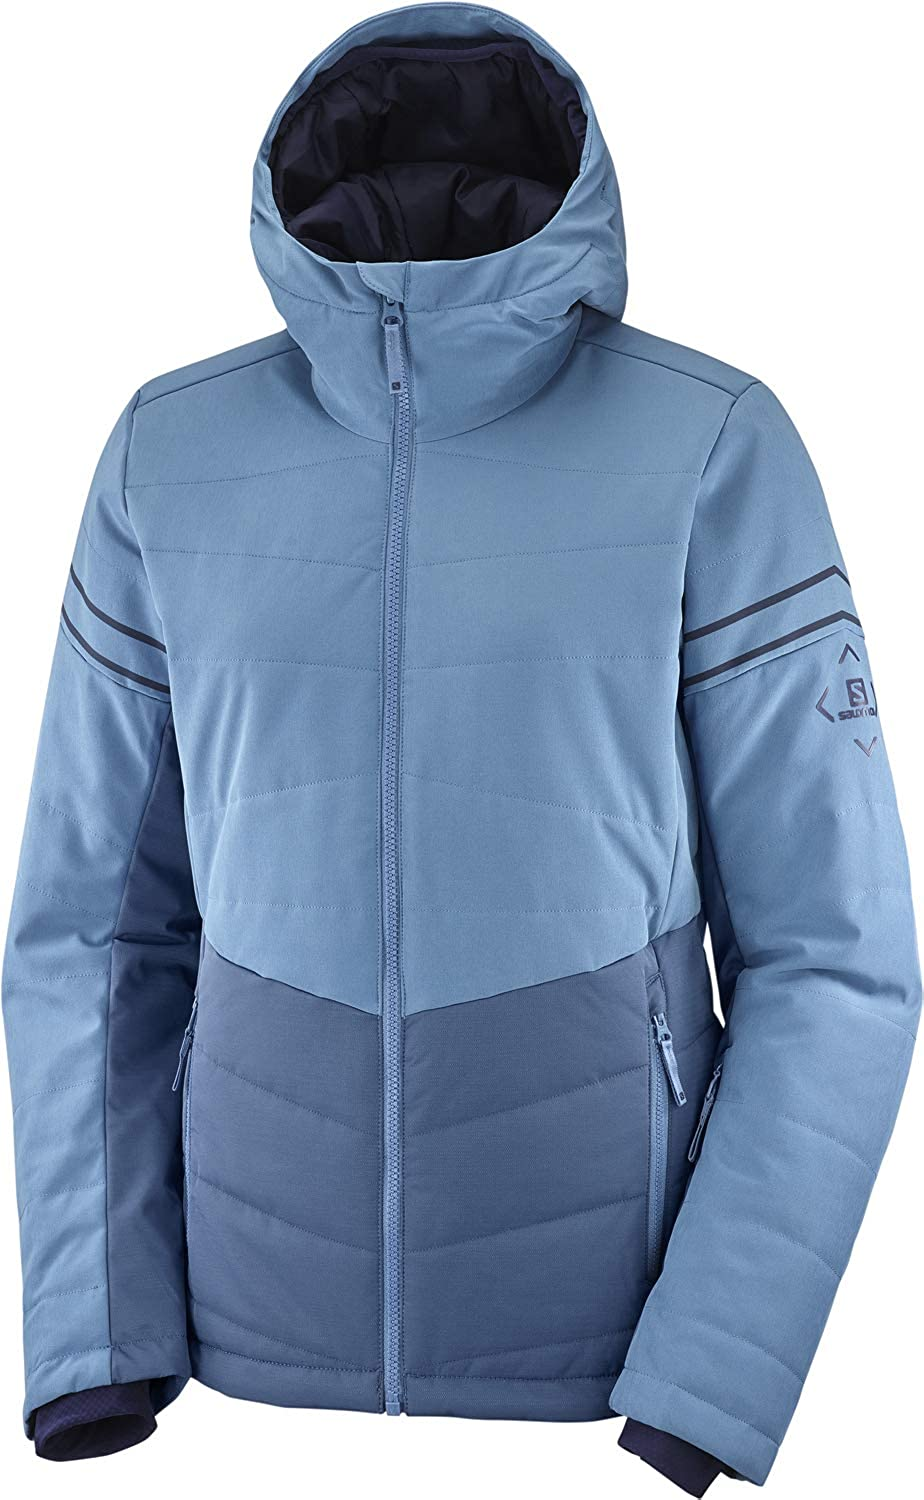 Salomon Edge Women's Ski Jacket Morn OFFicial store Icy Heather XX-Large Some reservation